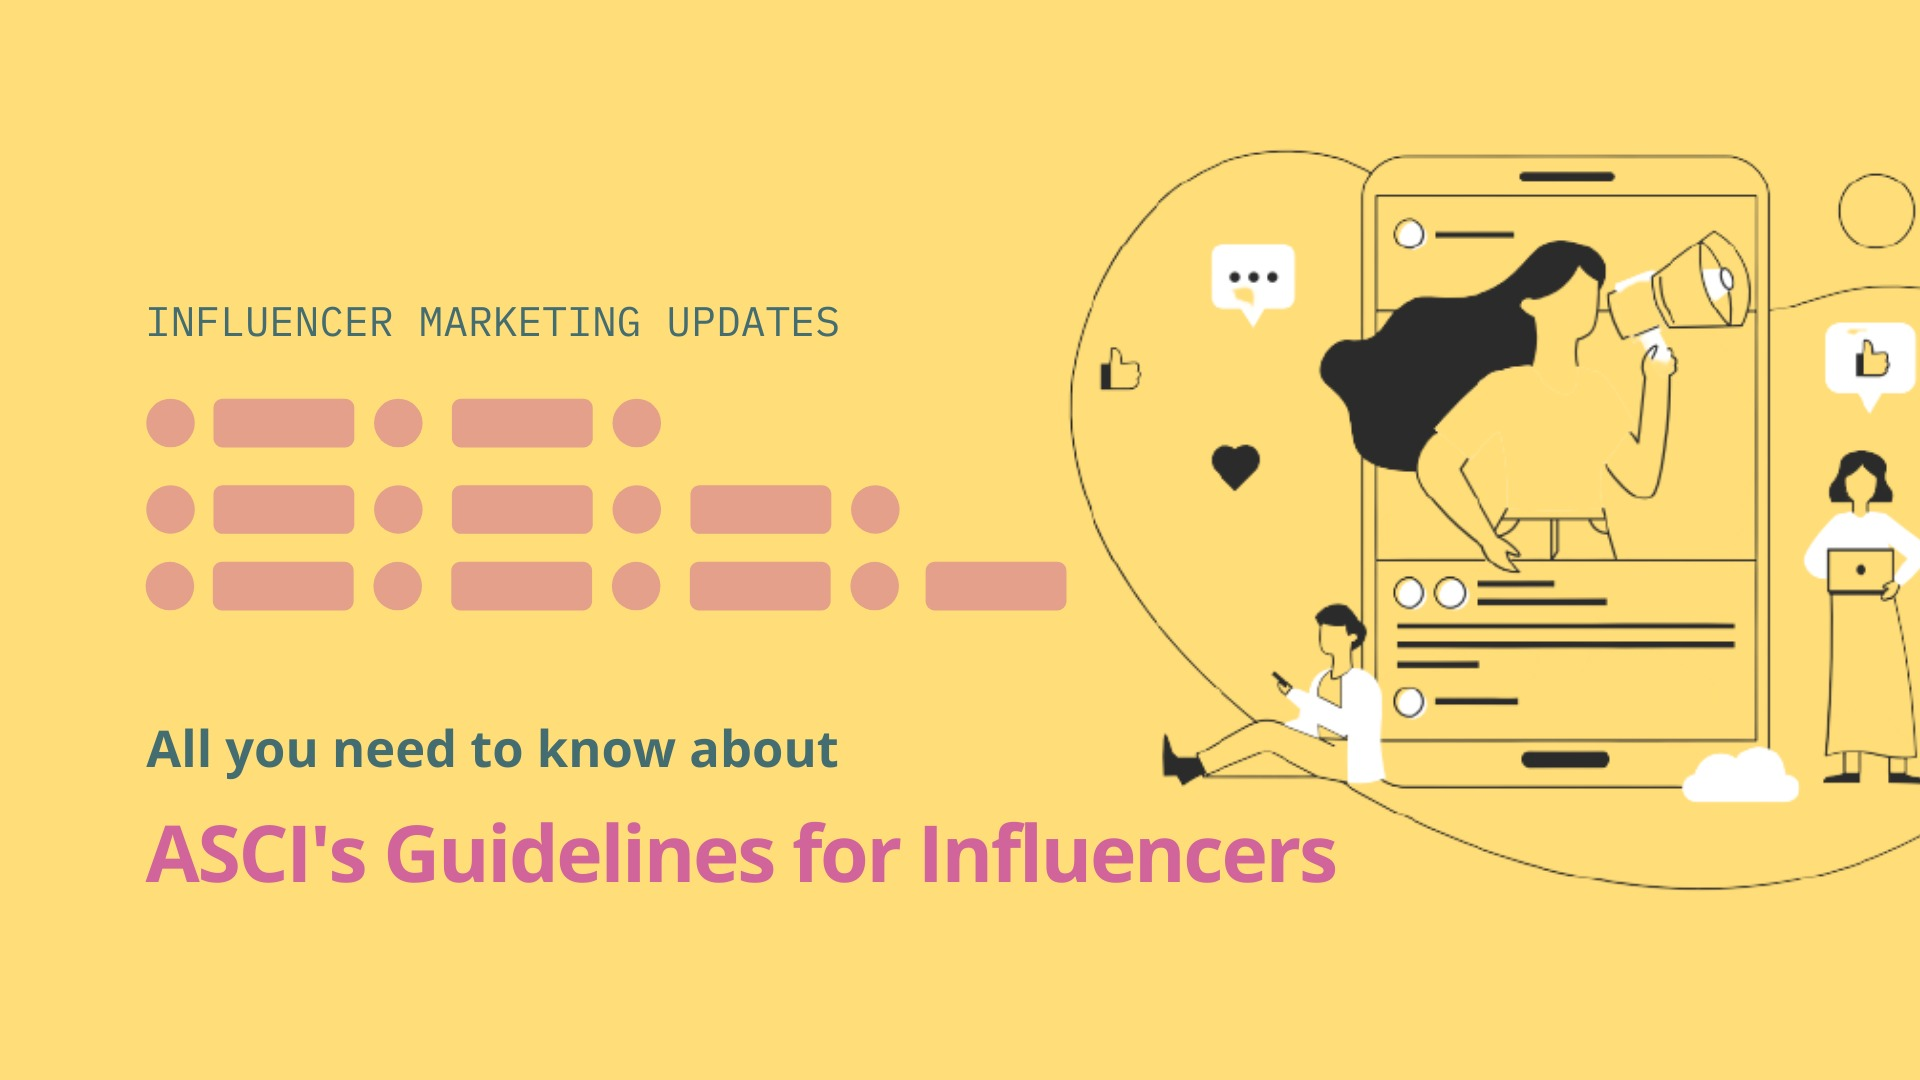 All you need to know about ASCI's guidelines for influencers - blog by Winkl (An influencer marketing platform)